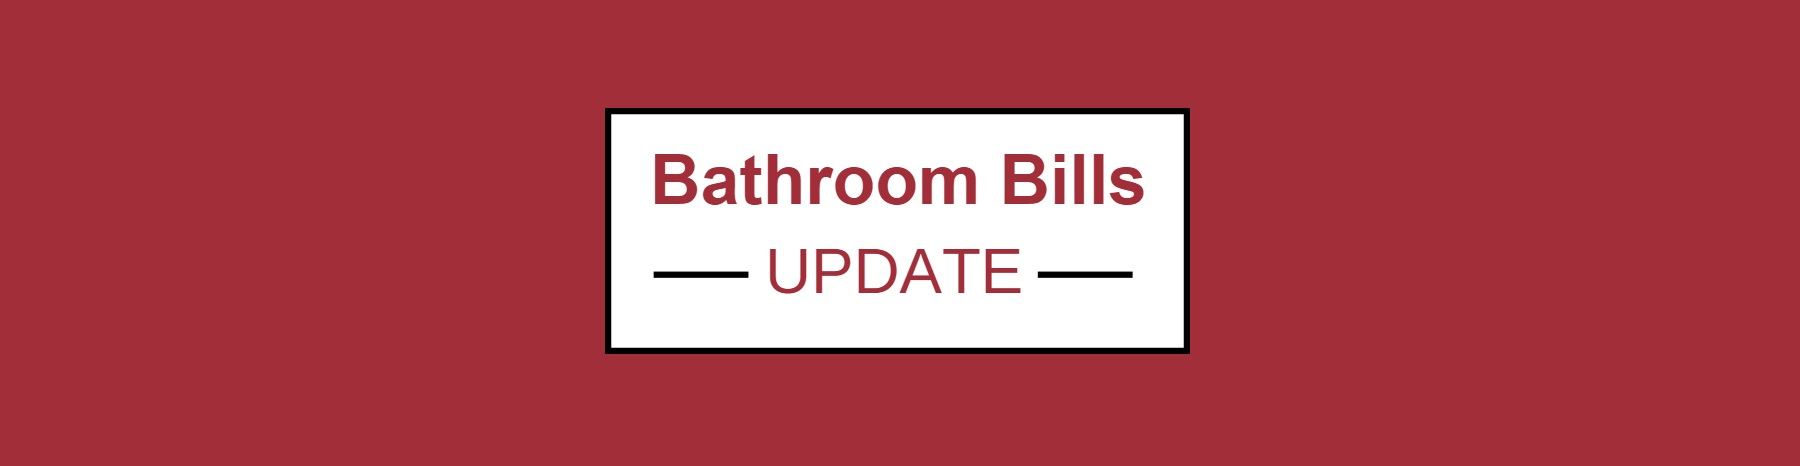 Bathroom Bills Update